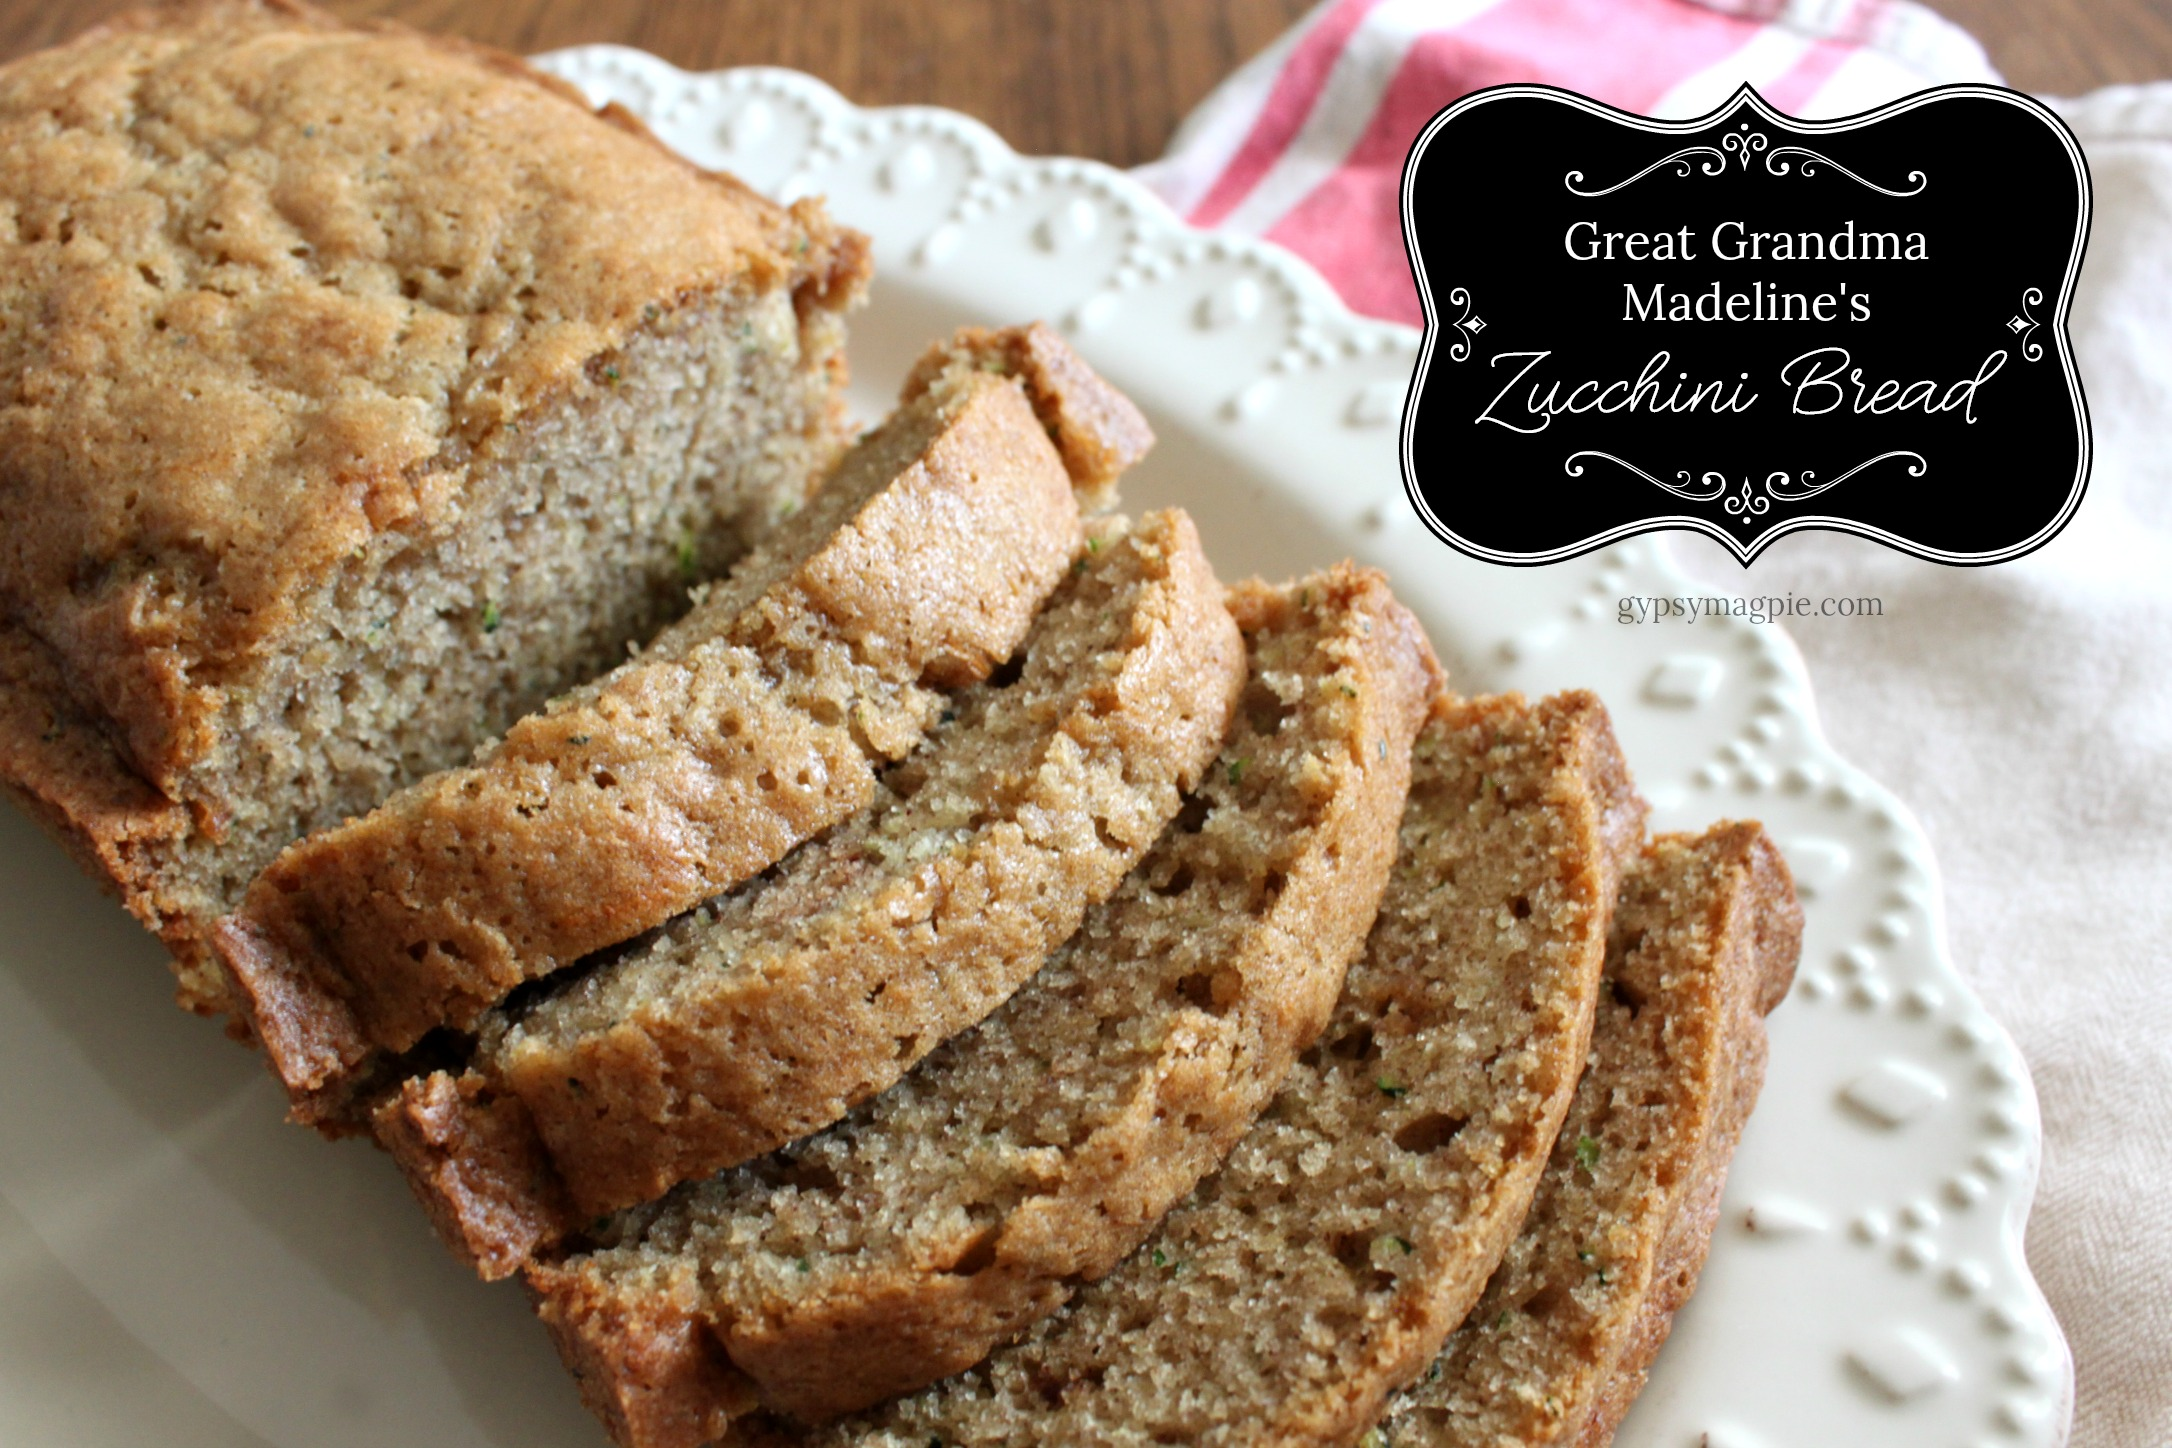 My great grandma's old fashioned zucchini bread. Love this recipe! | Gypsy Magpie